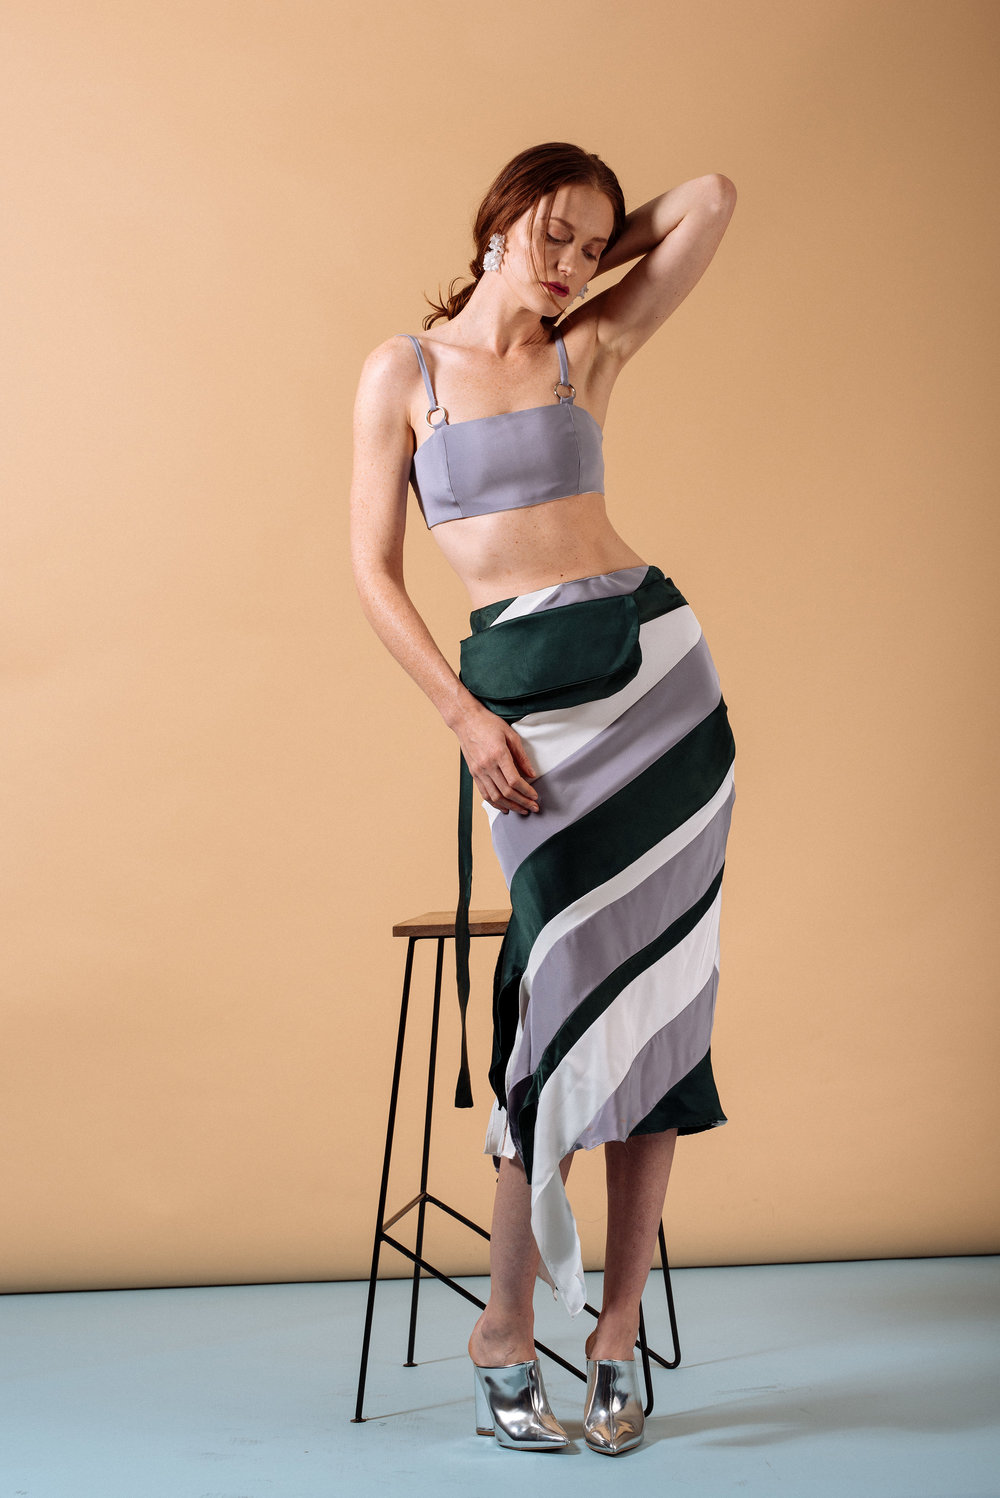 Look 7: #412 Nara Structured Bralette in Lavender, #414 Jaipur Zero-Waste Bias Skirt, #417 Mito Bag-Belt in Emerald